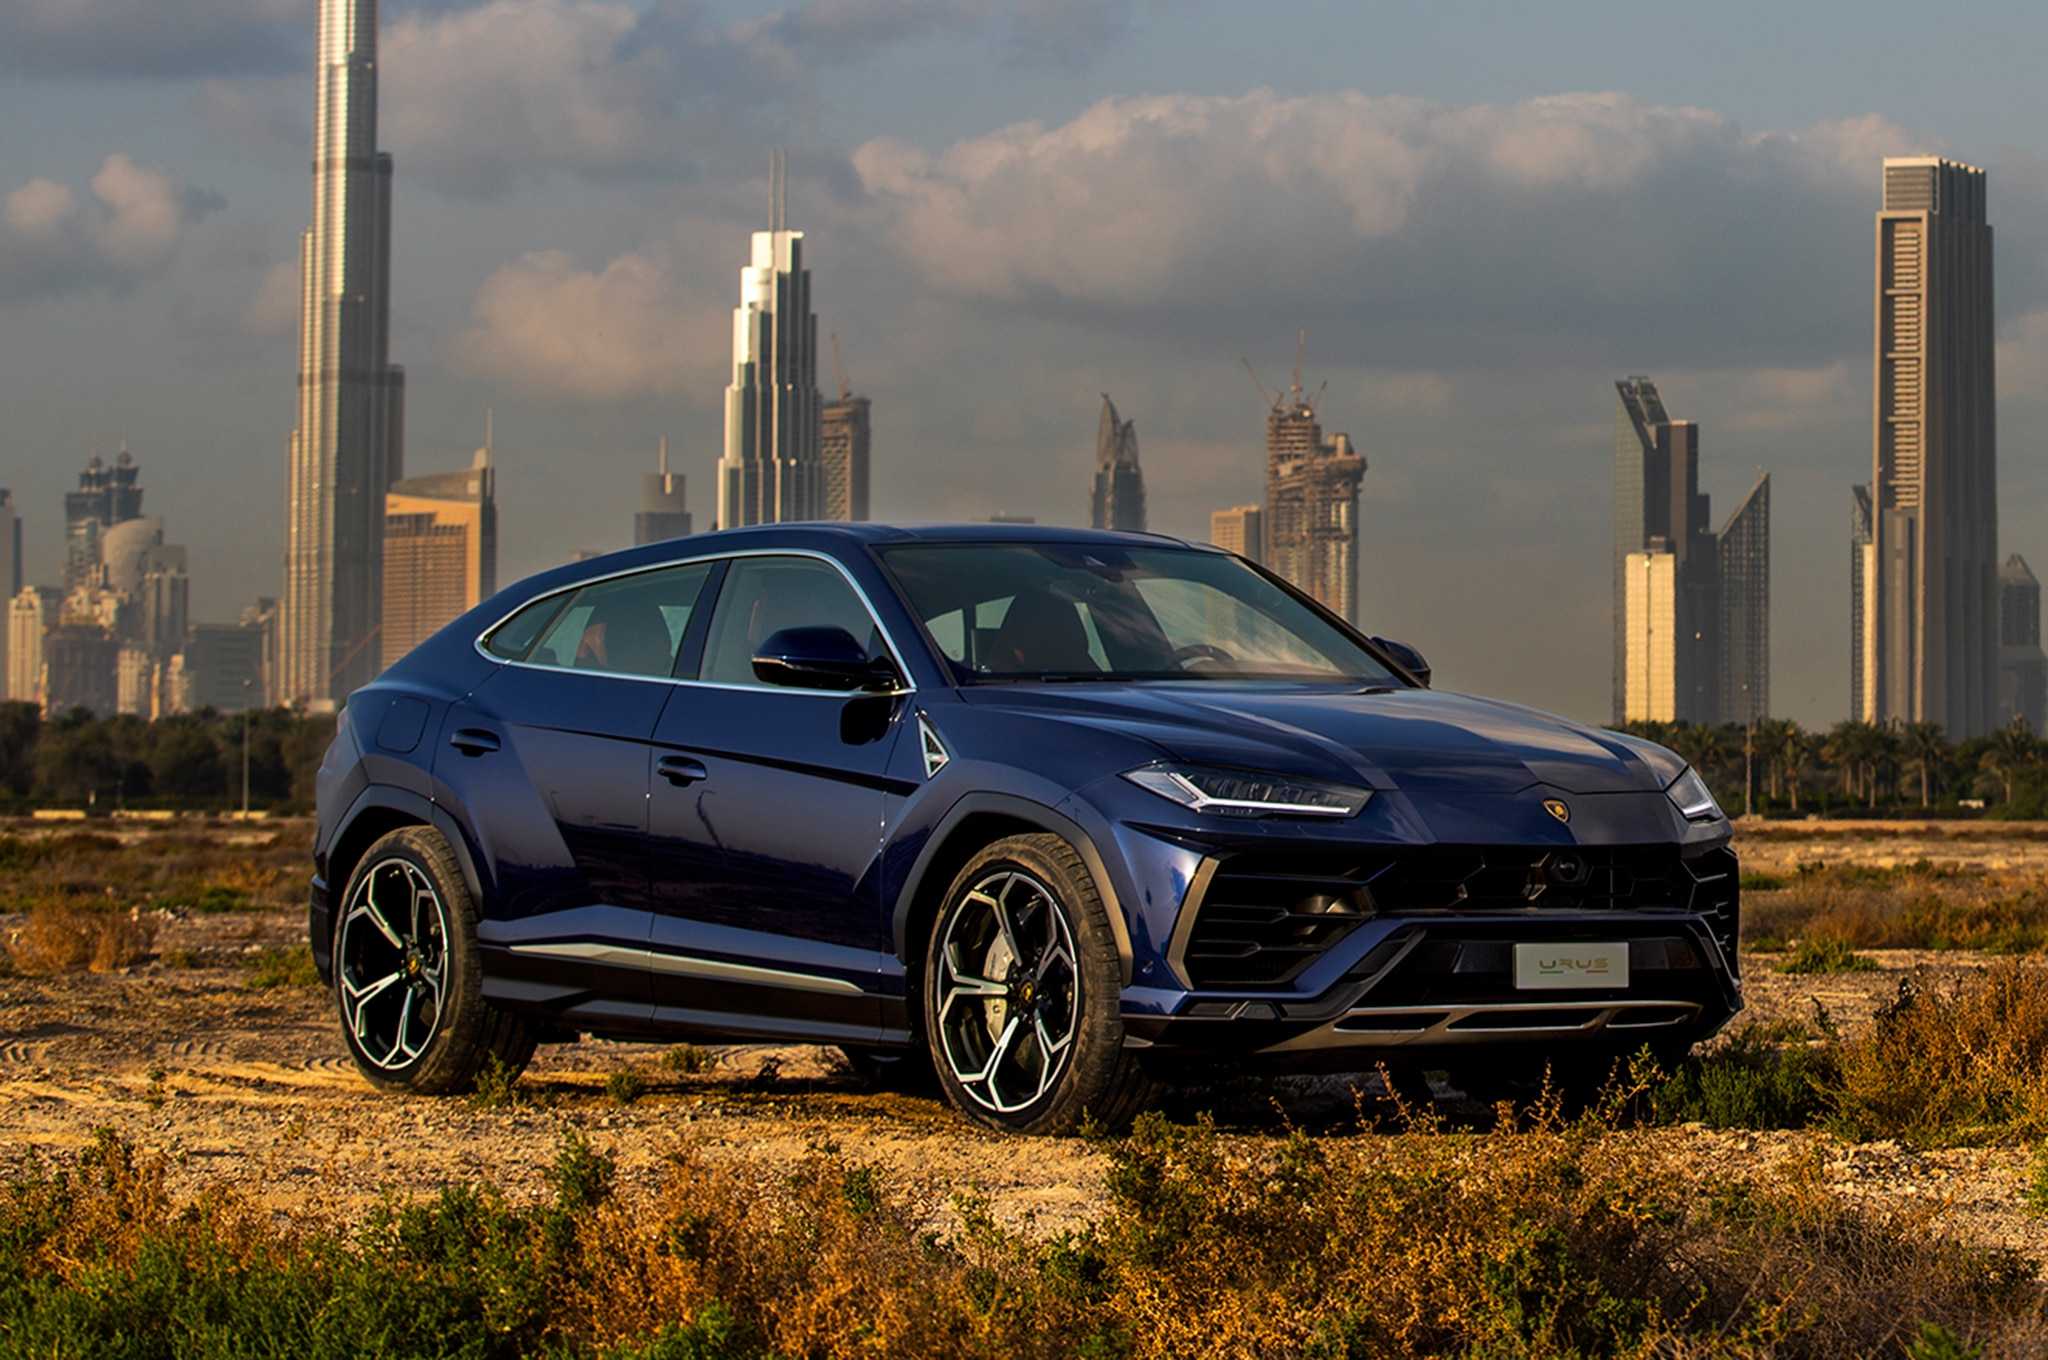 2019 Lamborghini Urus First Drive Review Automobile Magazine